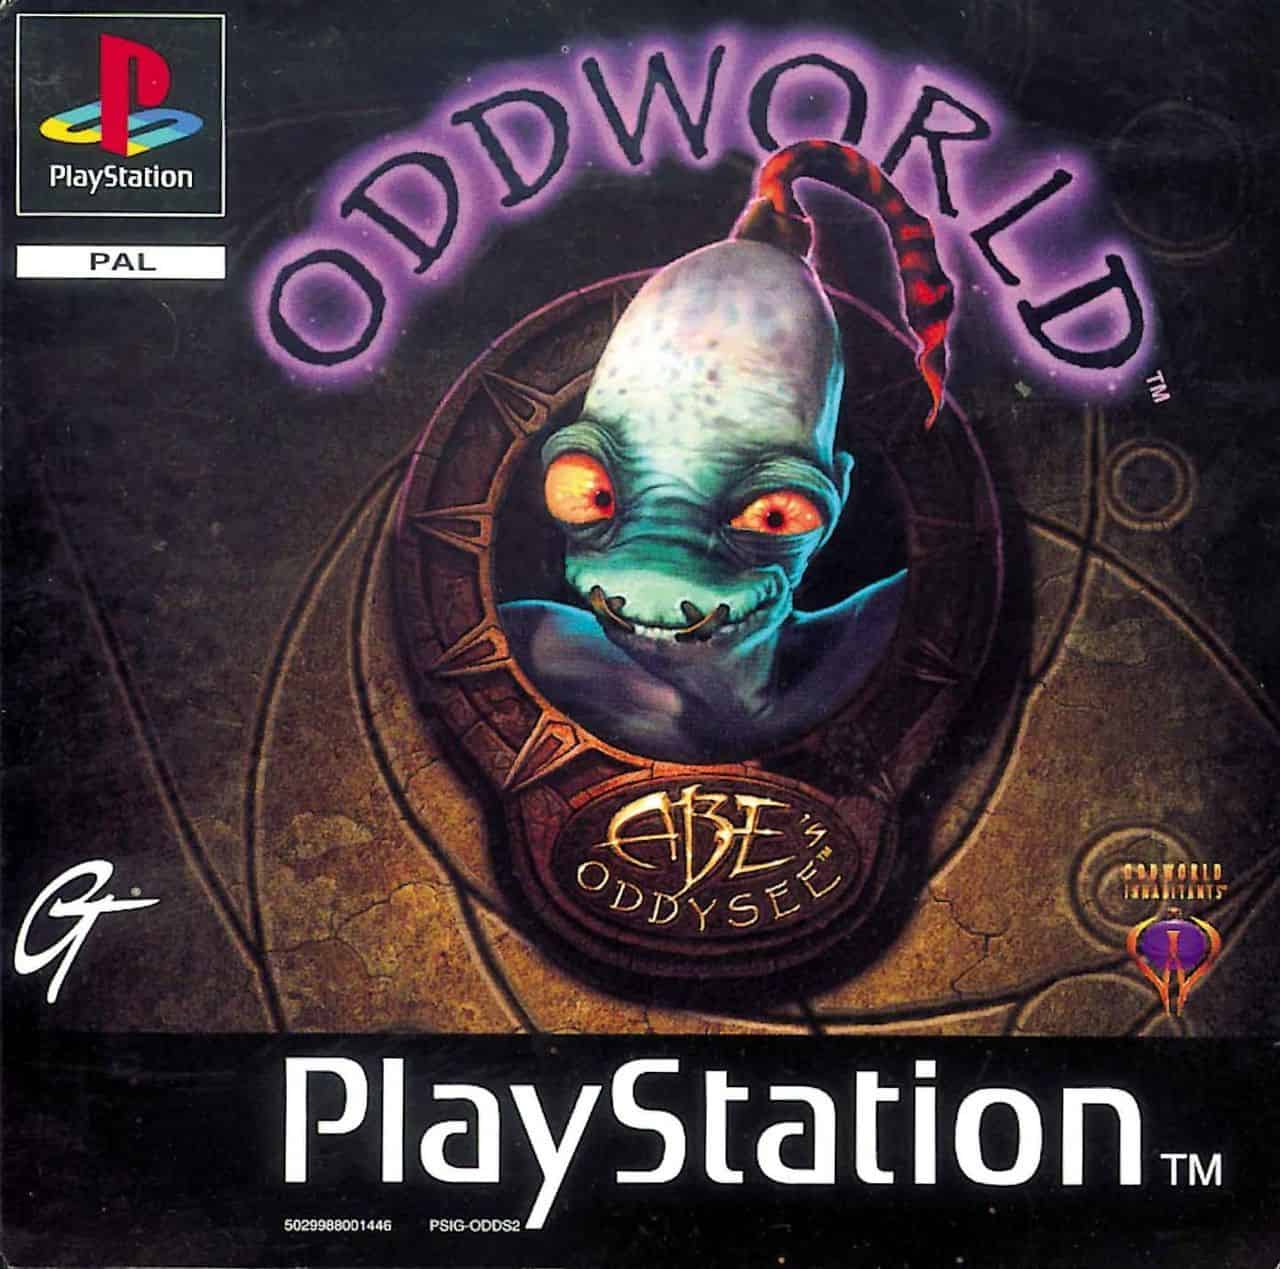 oddworld abes oddysee playstationclassic